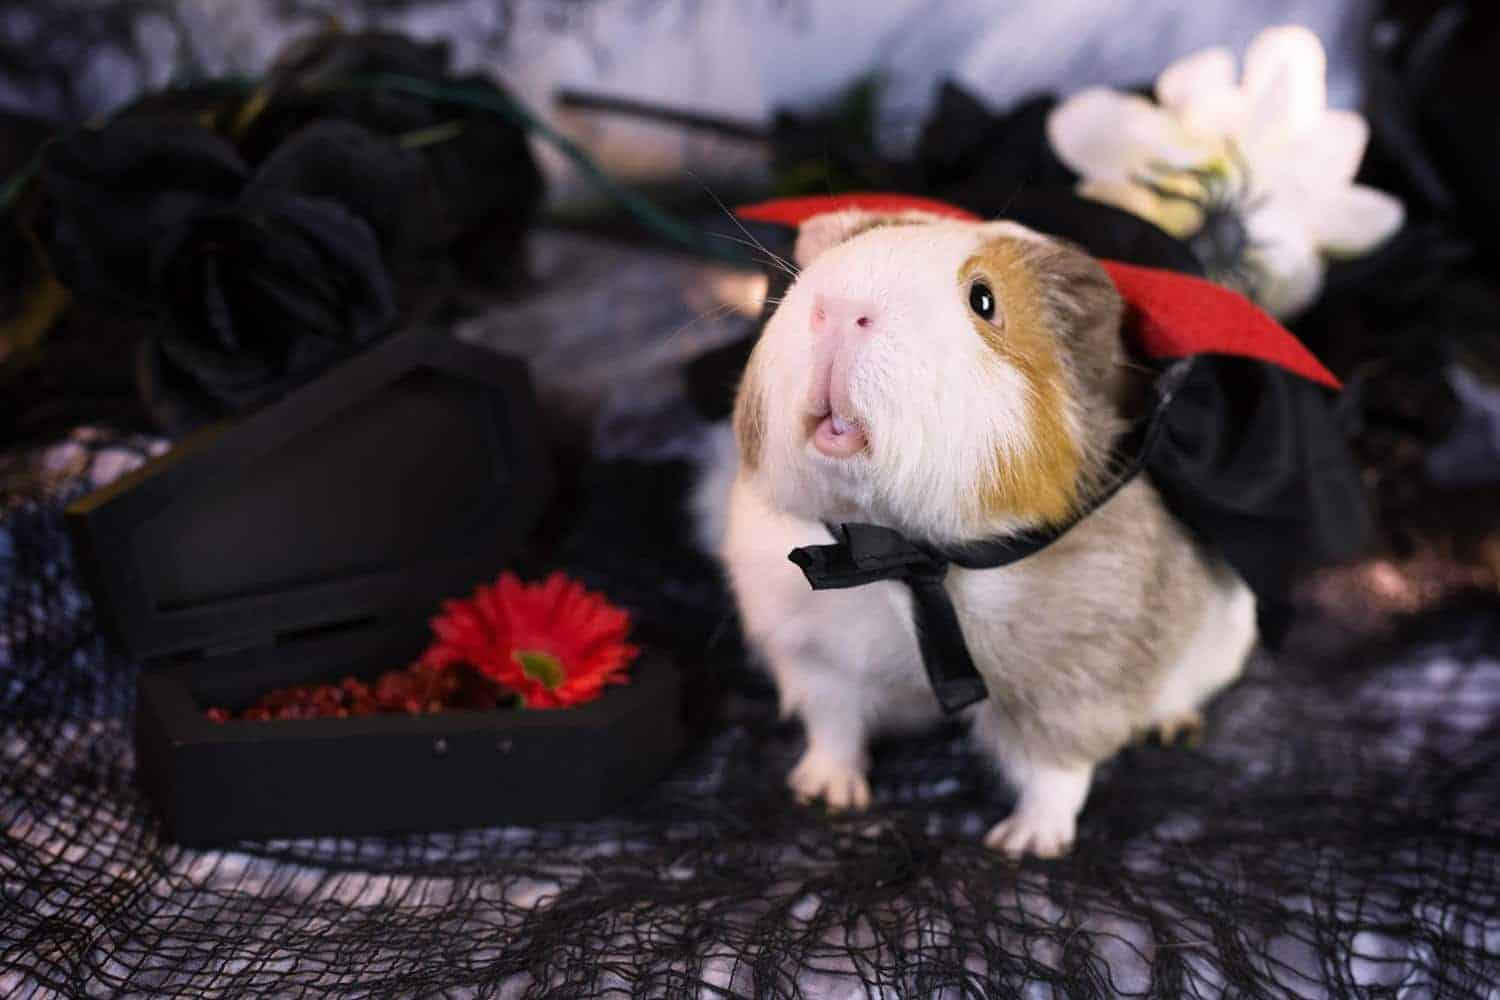 7 Tricks for Photographing Guinea Pigs